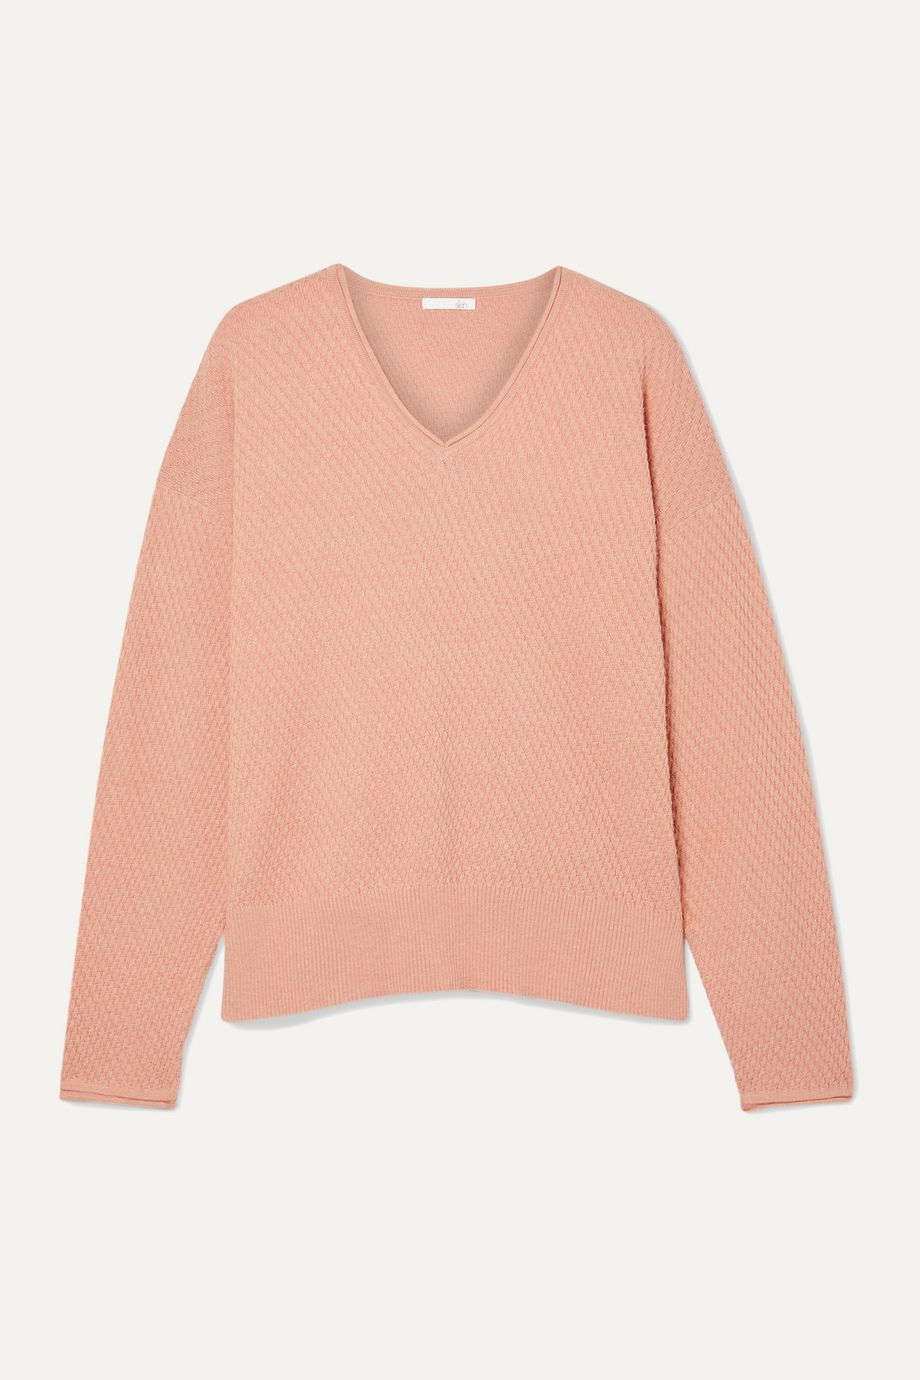 Skin Deana cotton-blend sweater